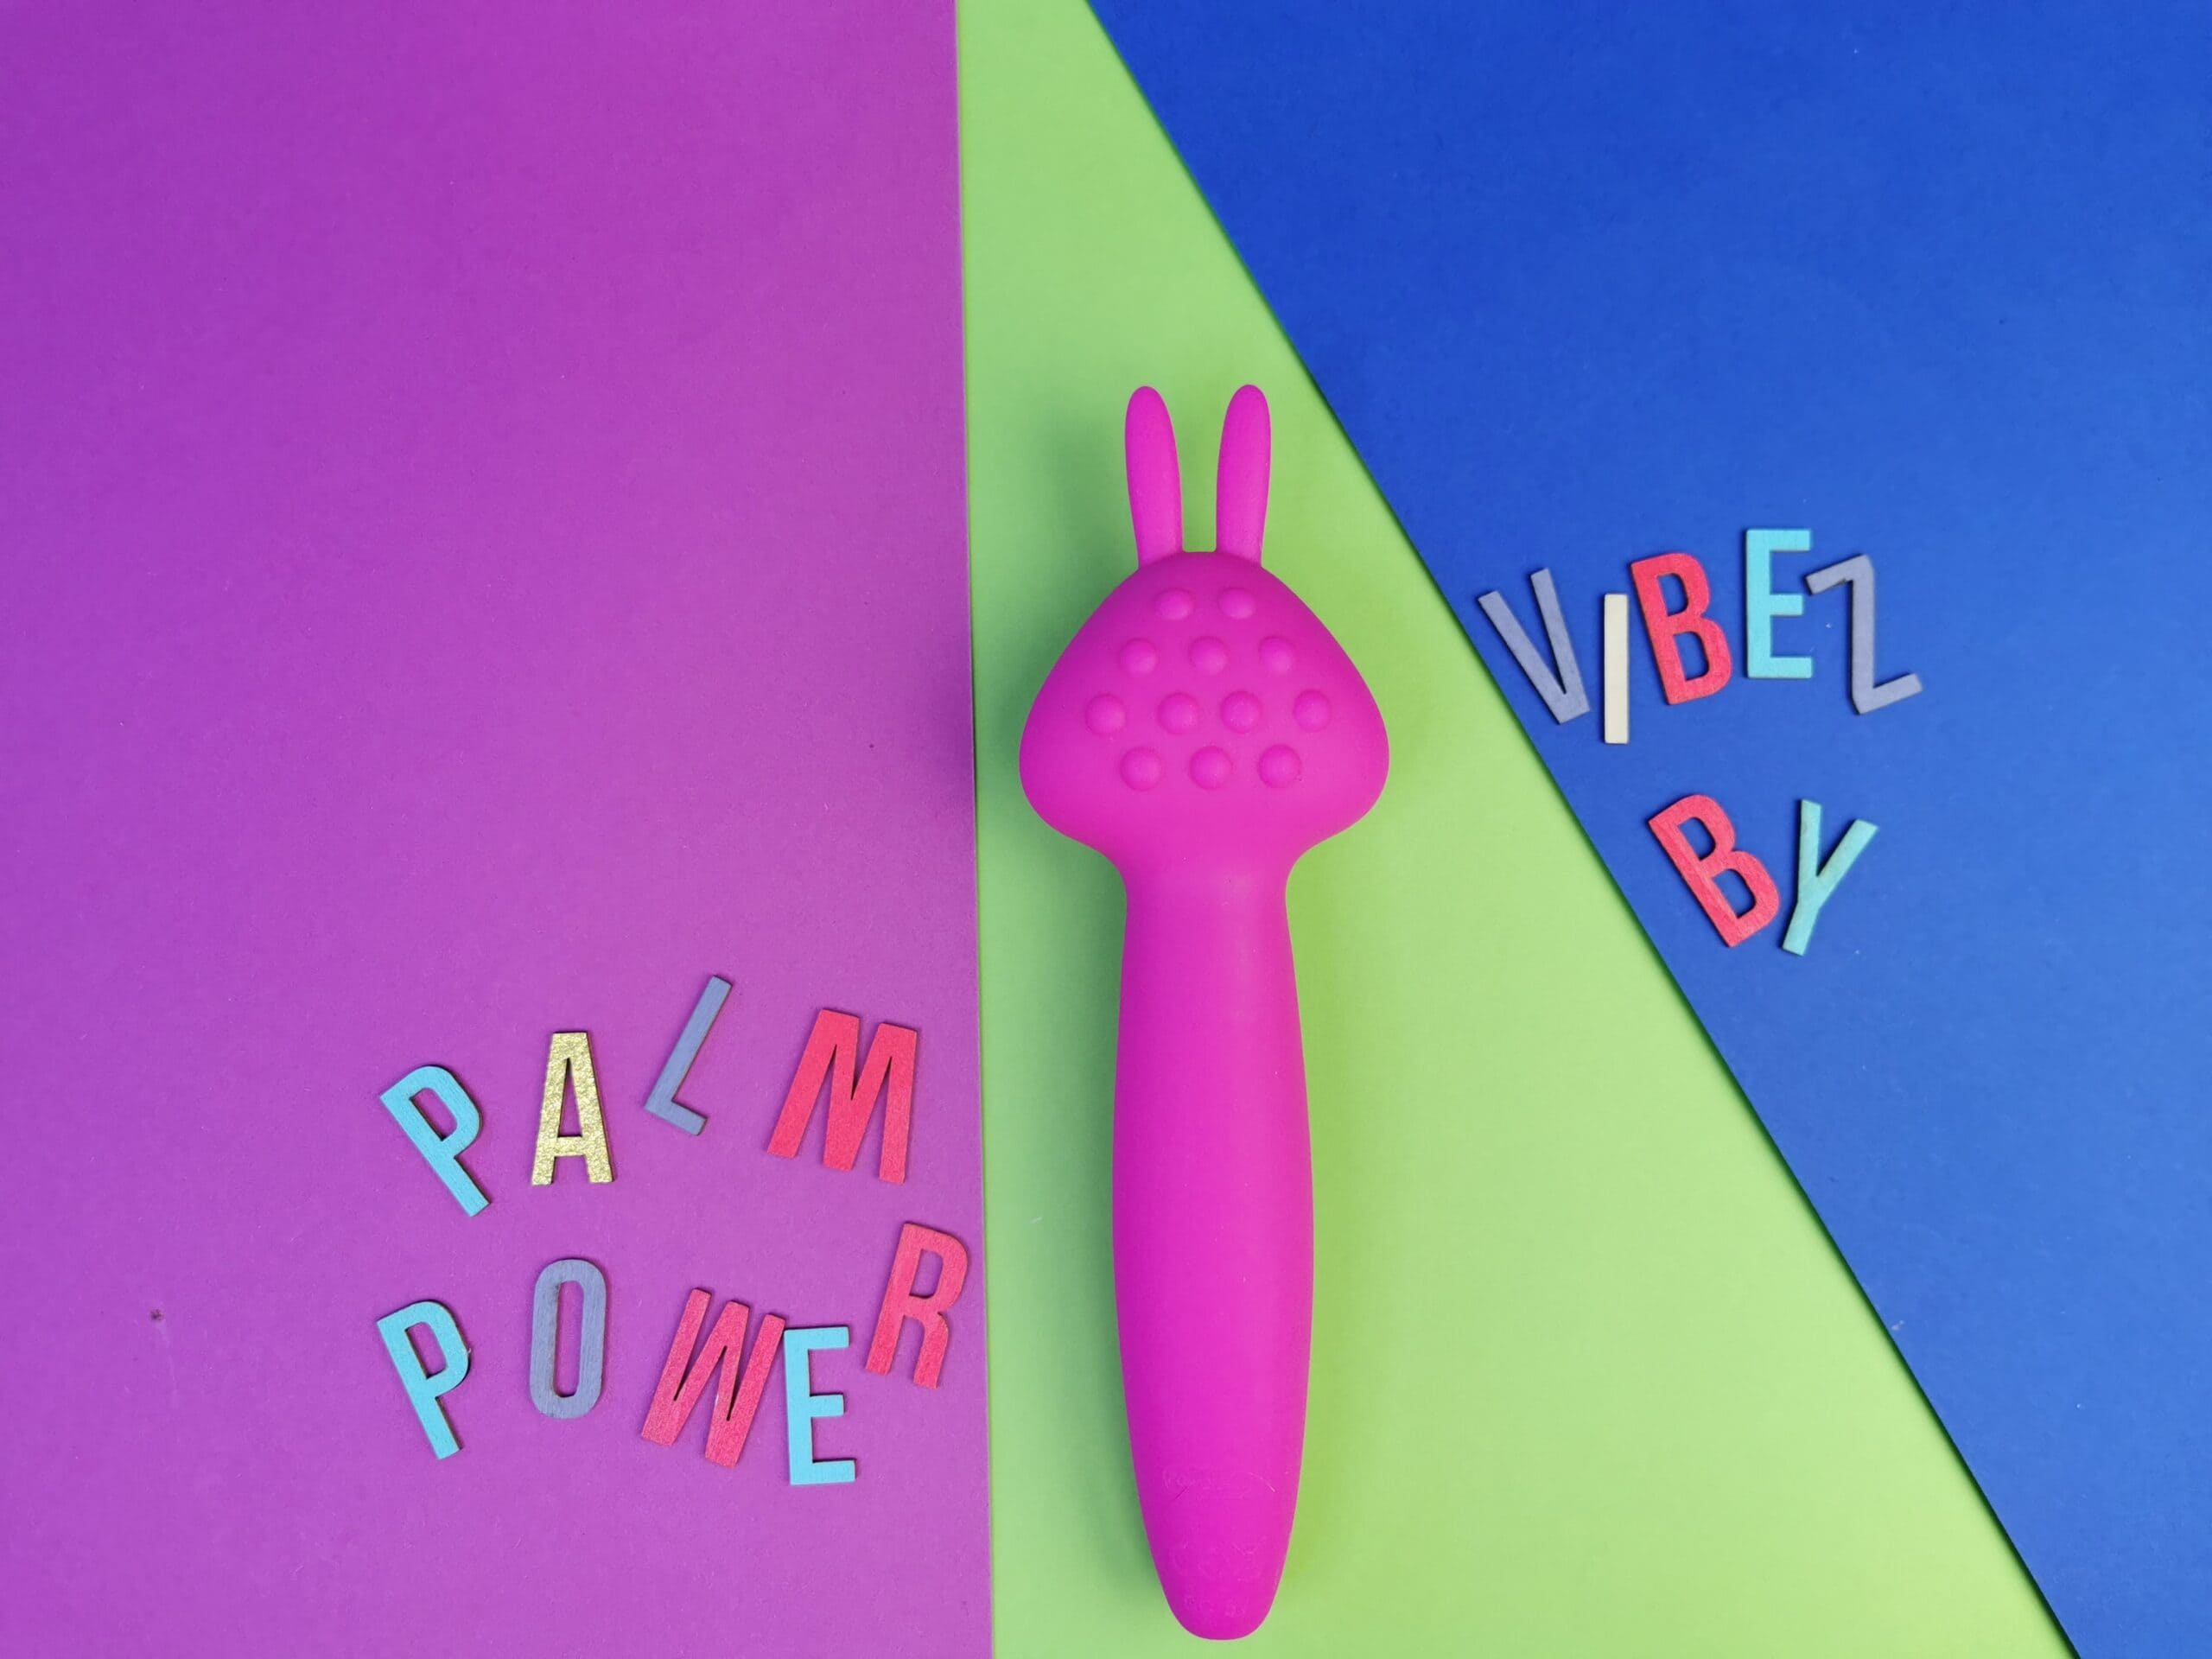 Vibez by palmpower – review